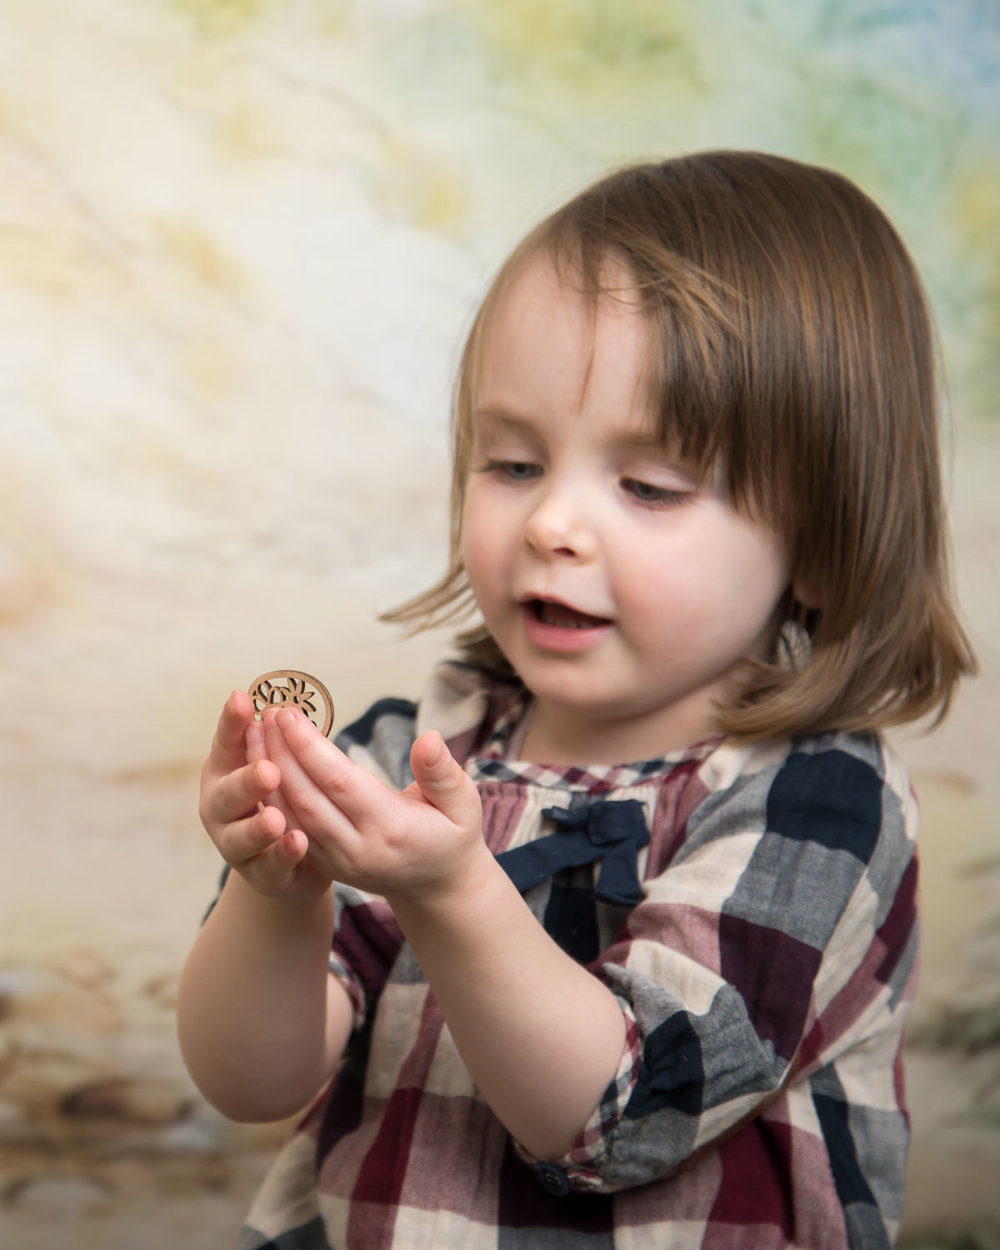 baby_photography_Ely_Cambridgeshire_easter_mini_session_pooh_themed_backdrop_girl_playing_with_egg.jpg